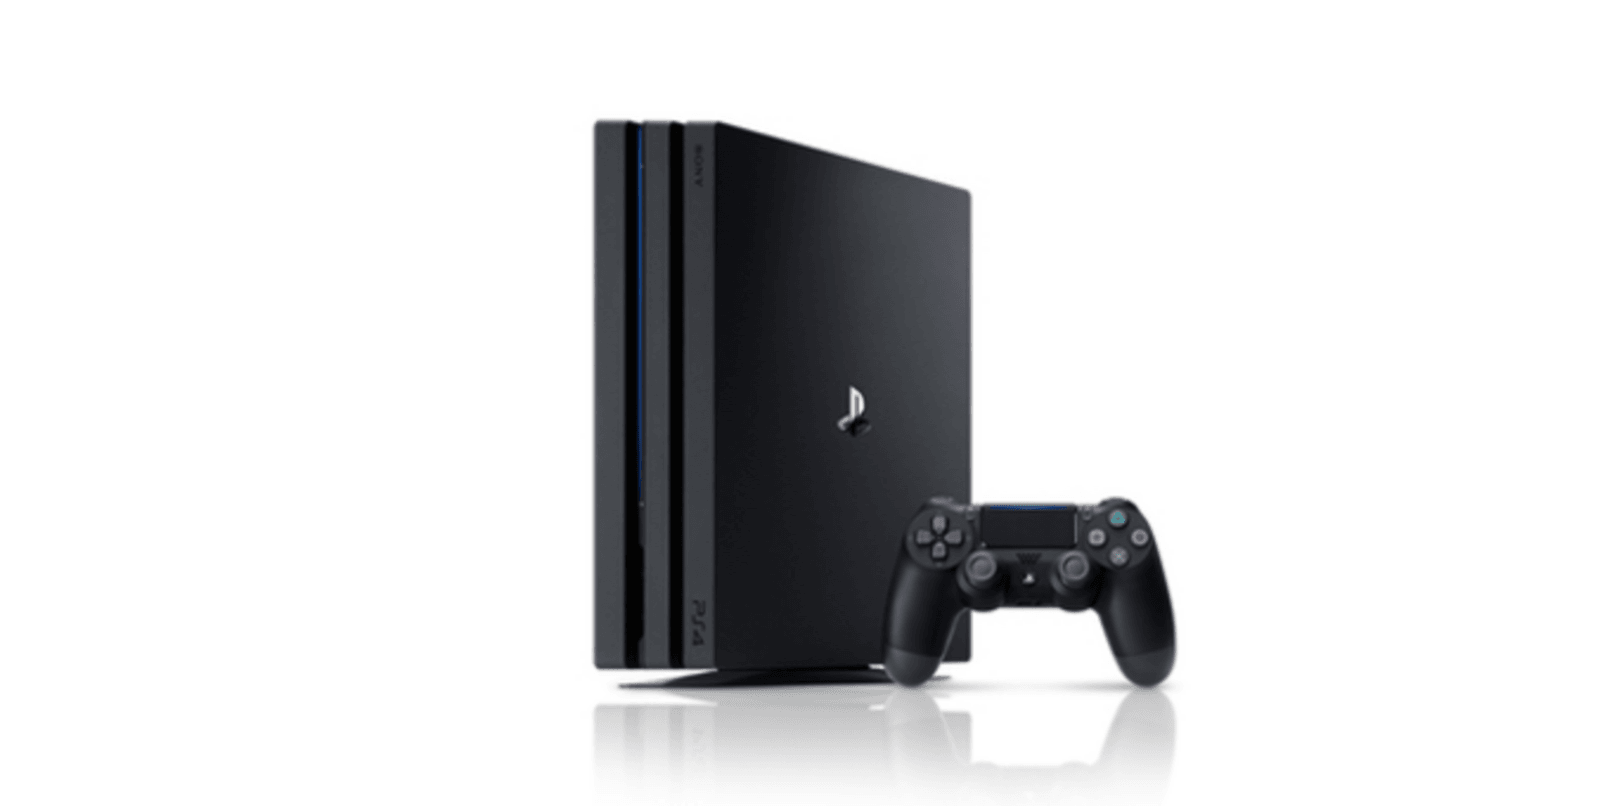 Sony (and maybe Nintendo) stick to Microsoft, the devil they know